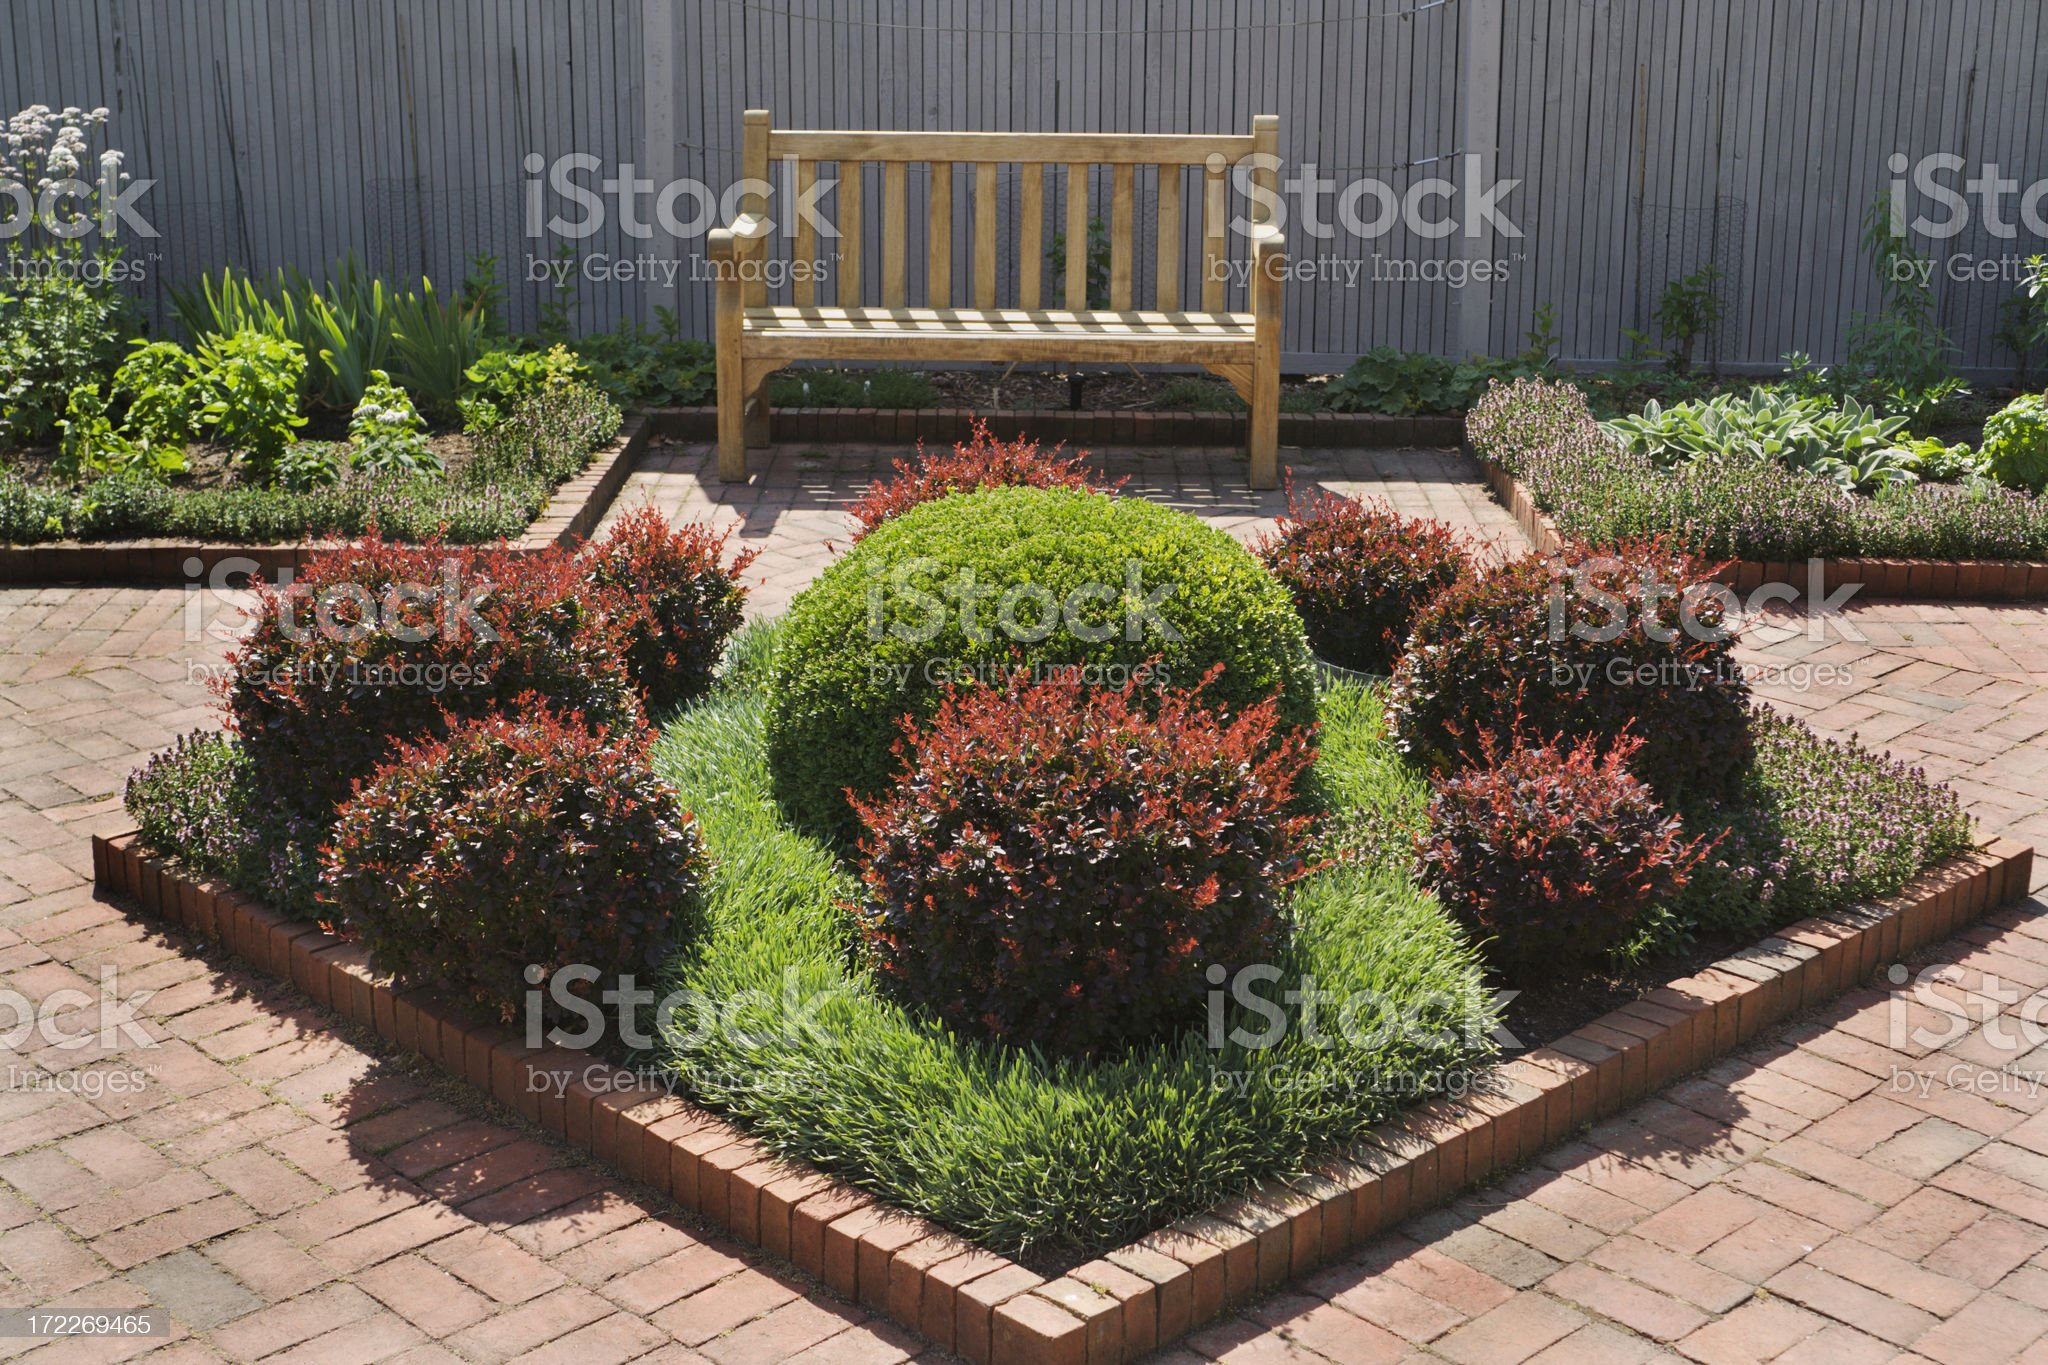 Brick Patio in Yard with Formal Garden and Flower Beds royalty-free stock photo